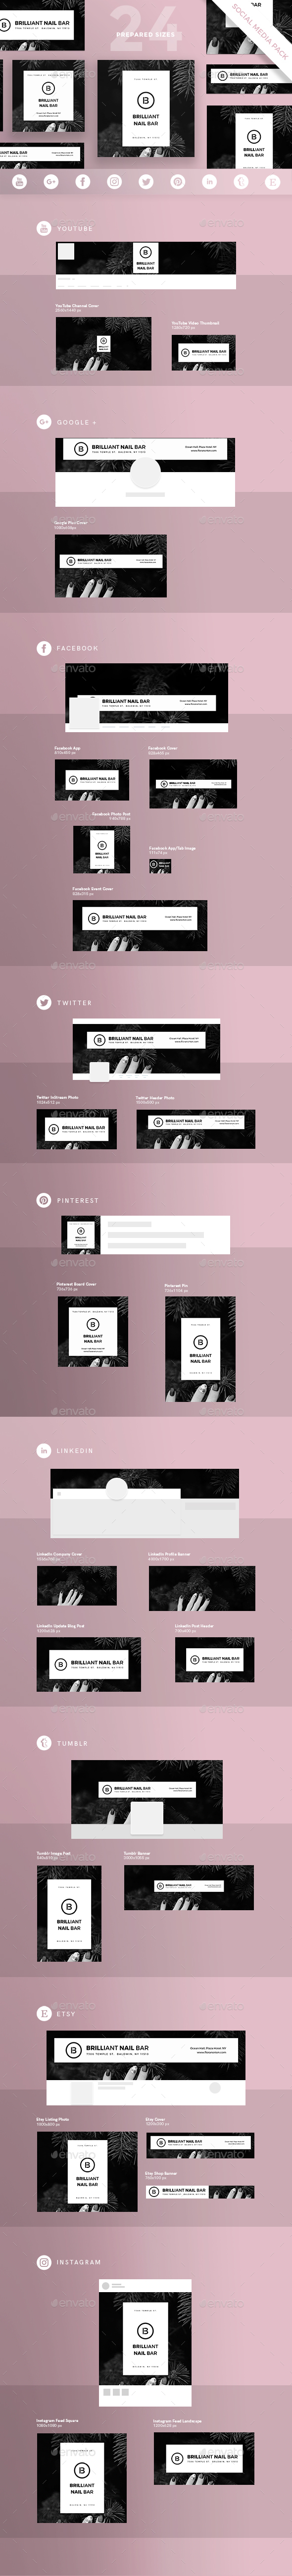 Nails Bar Social Media Pack - Miscellaneous Social Media